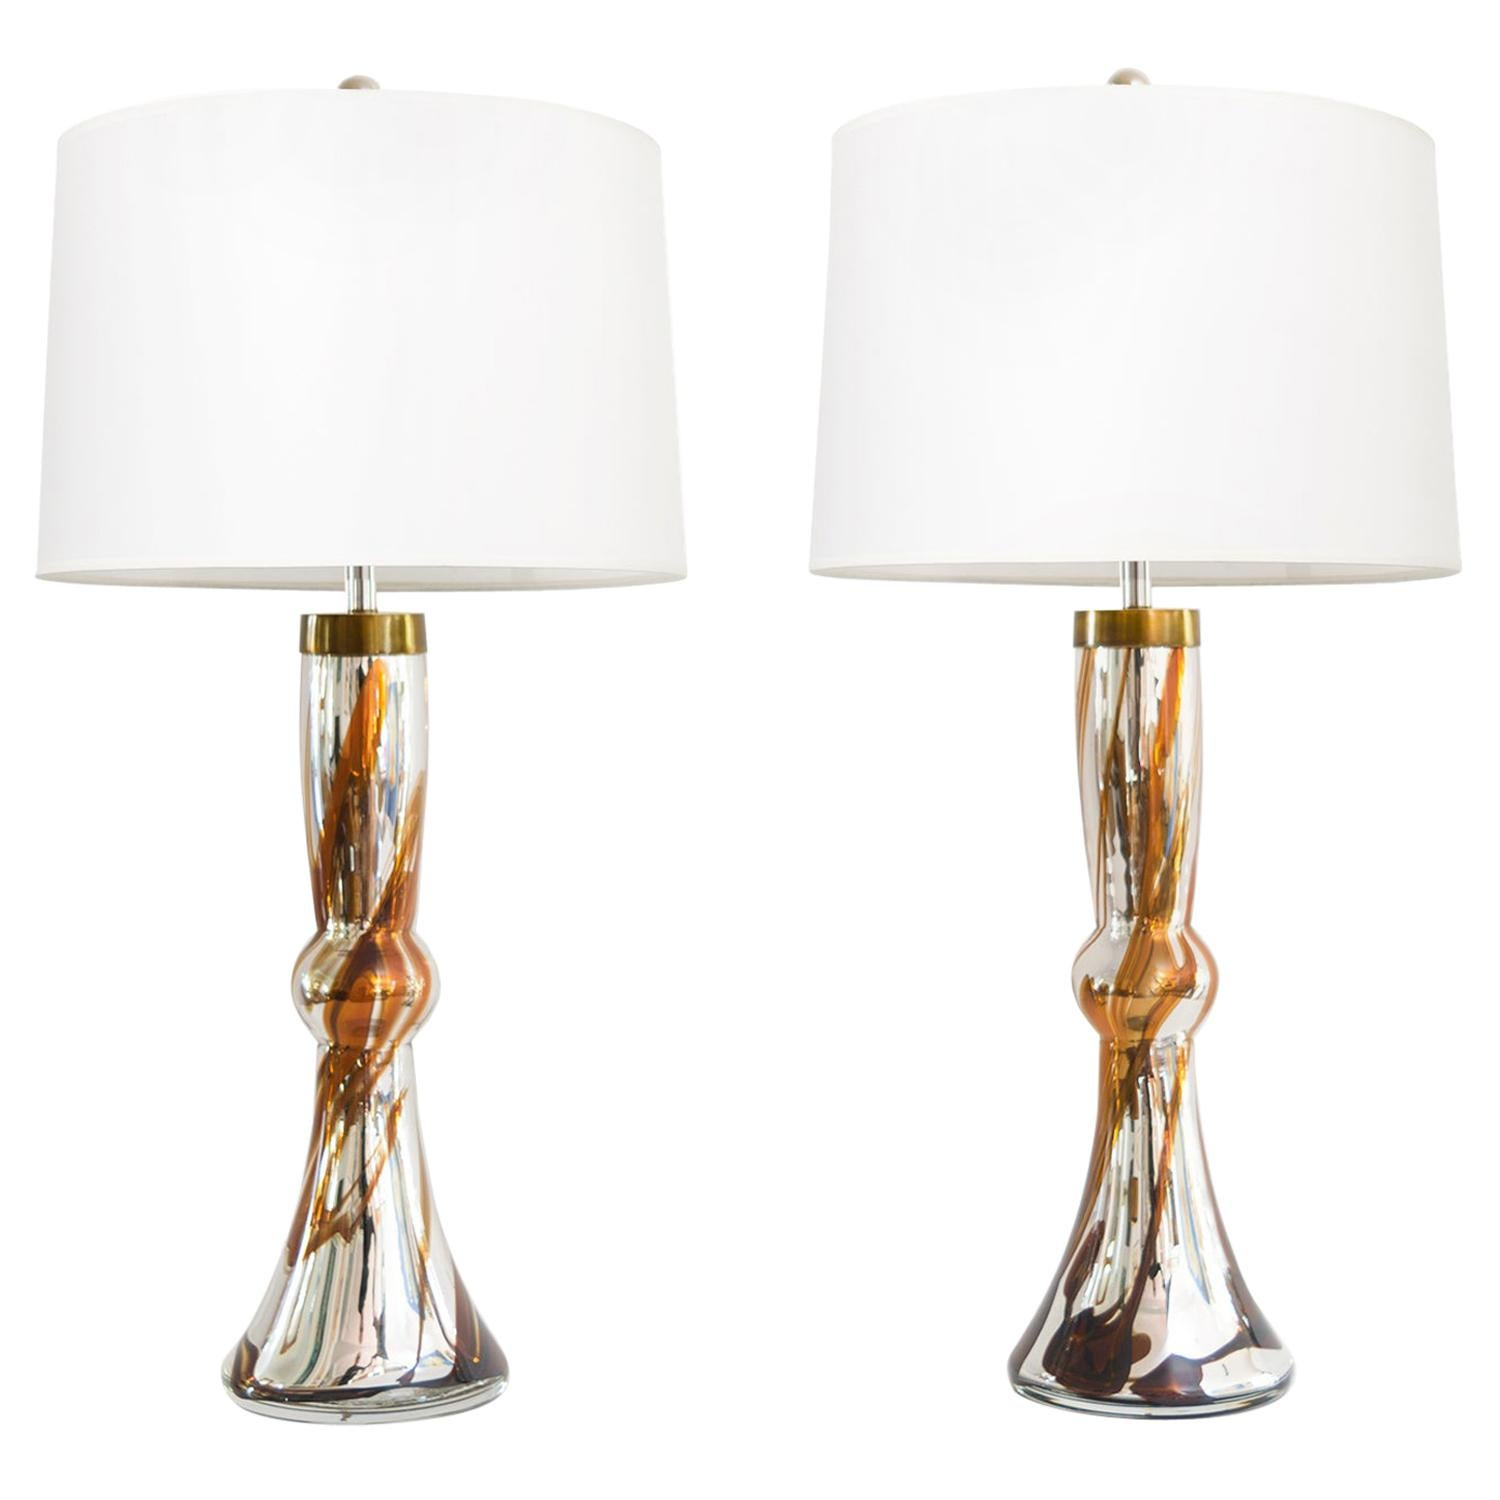 Johansfors Pair of Mid-Century Modern Mercury Glass Lamps with Amber Details